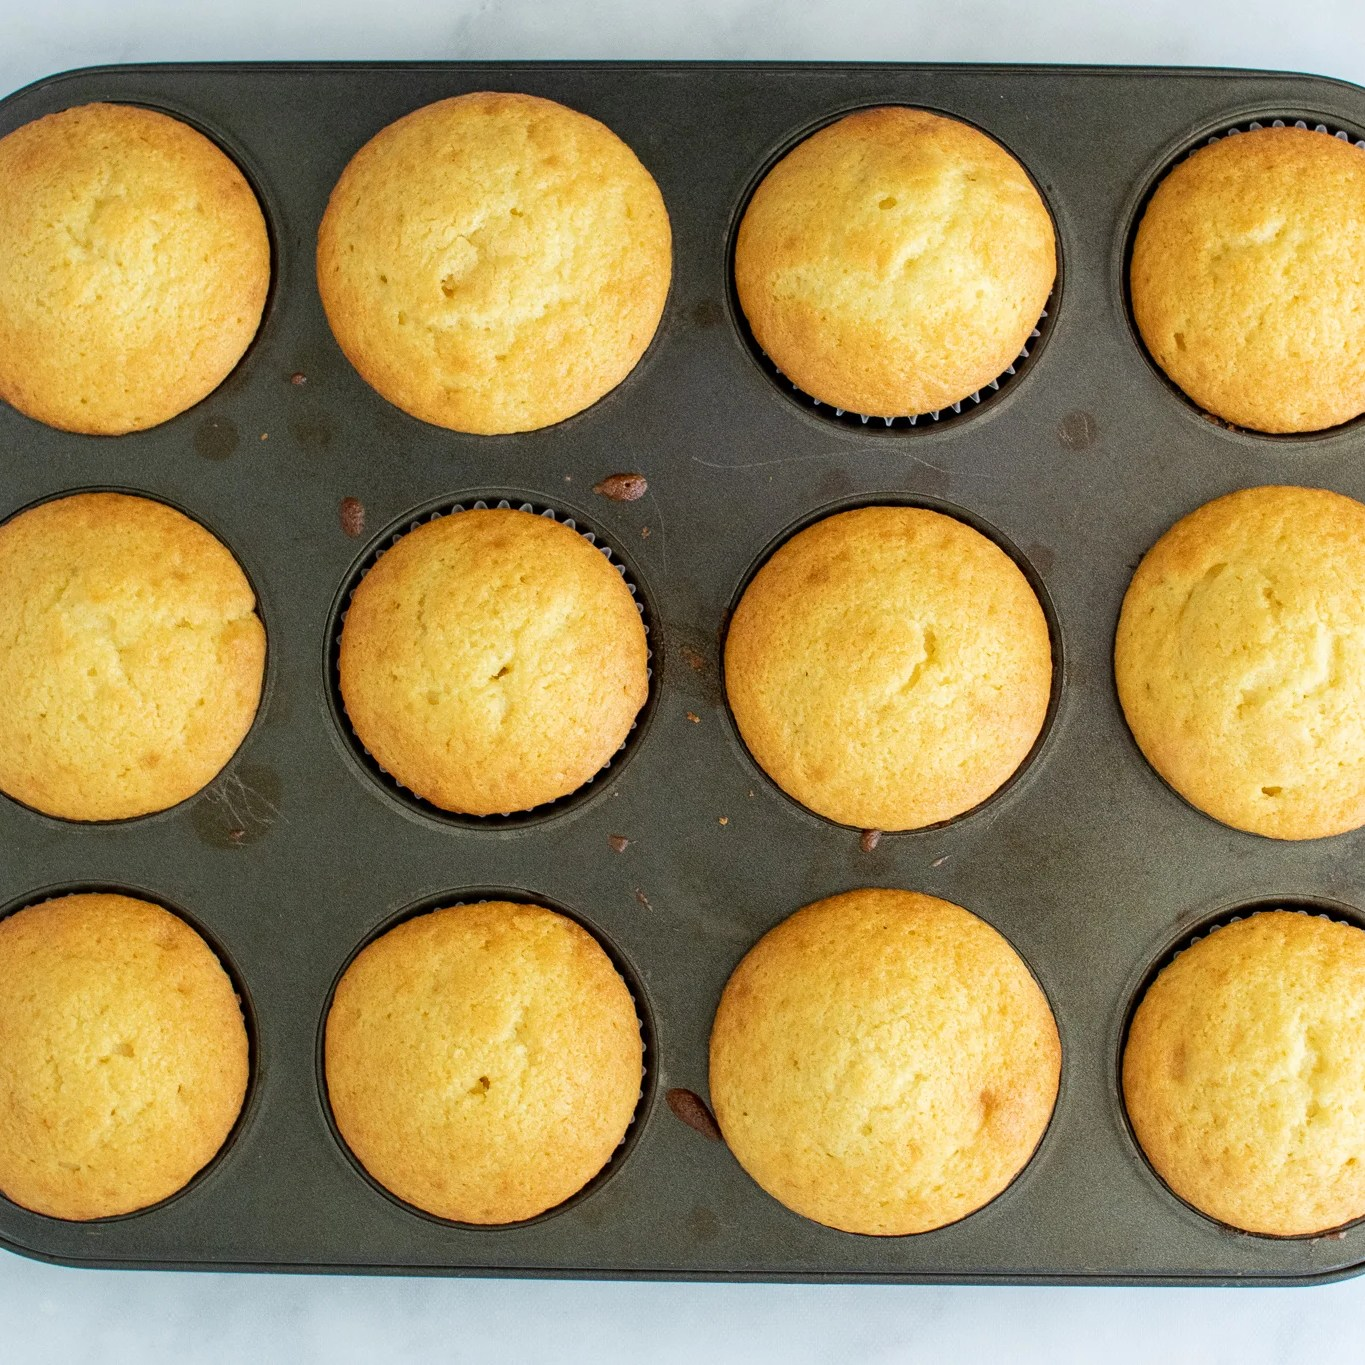 baked cupcakes in a tray